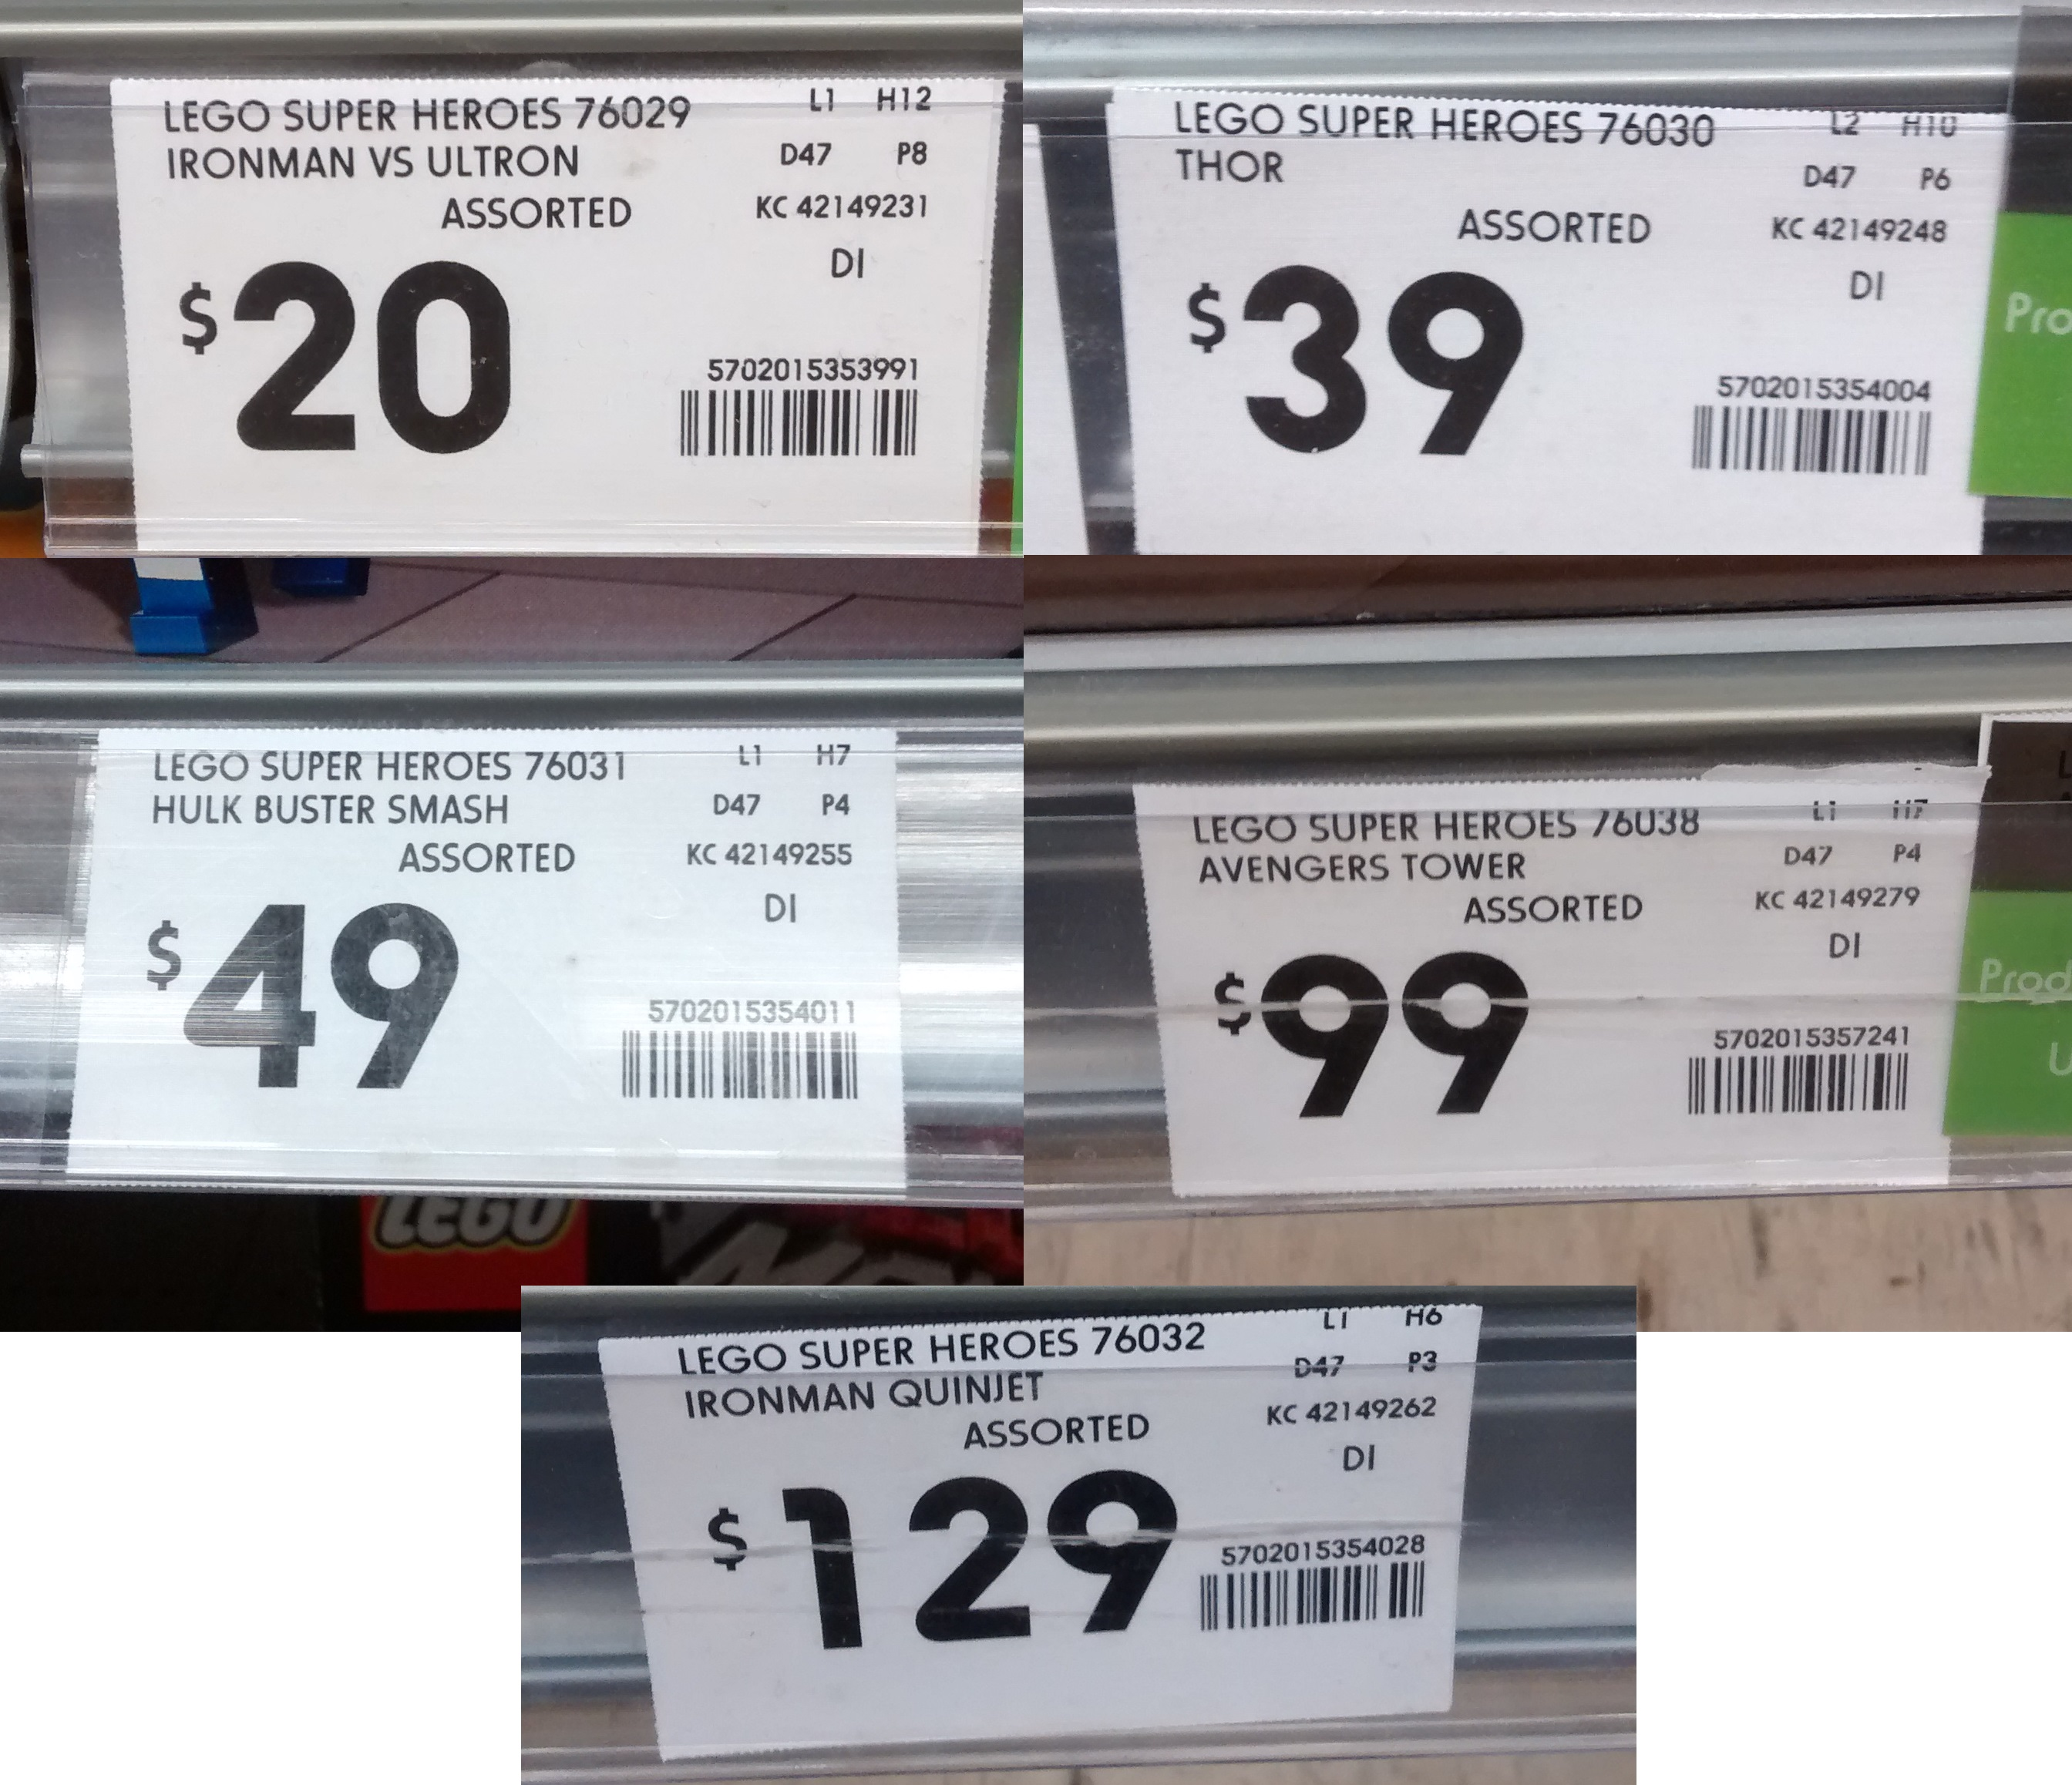 Fancy Kmart Avengers Set Price Tags